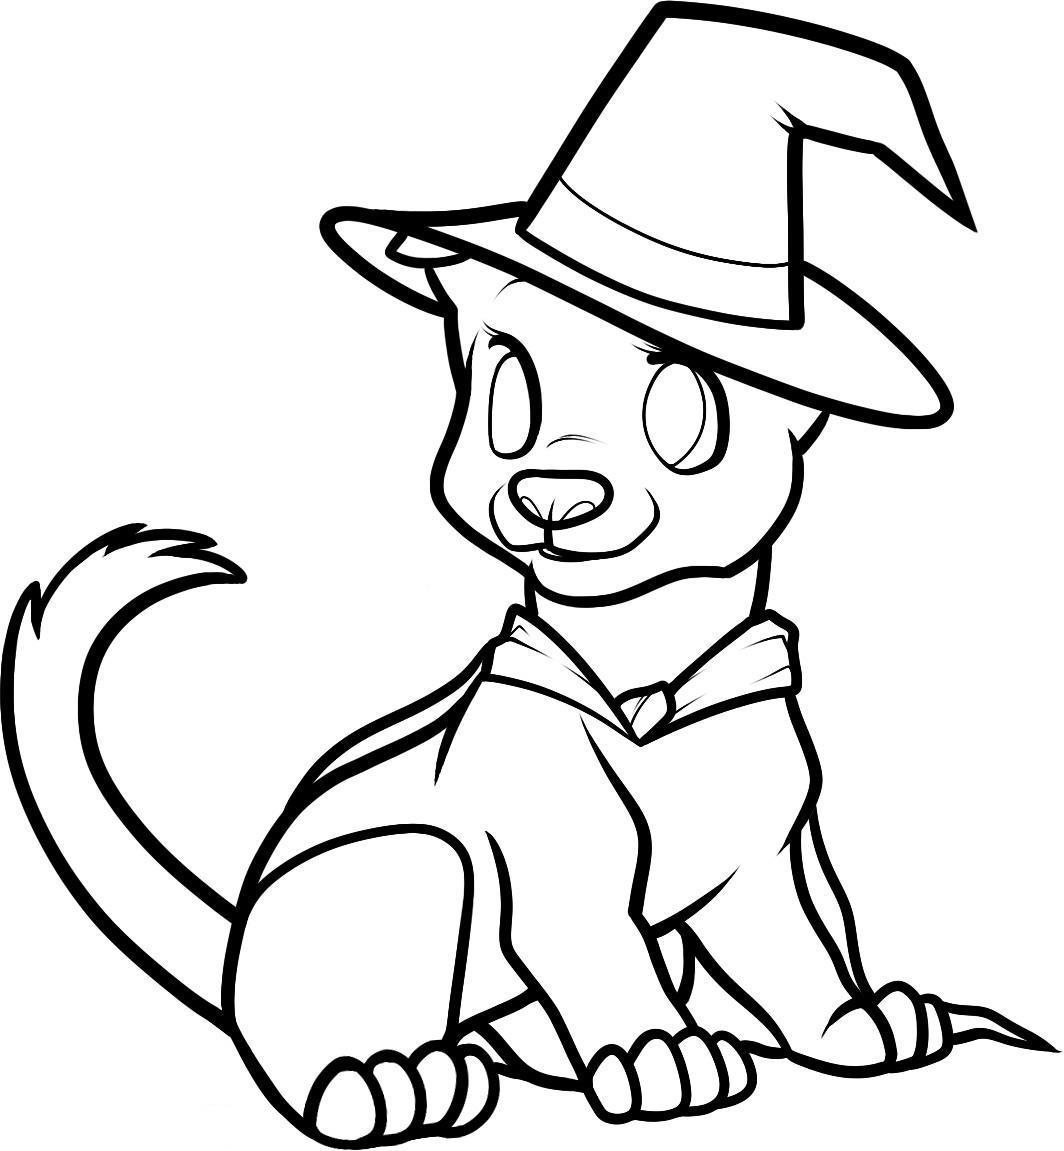 Cute halloween coloring pages to print coloring home for Cute halloween coloring pages free